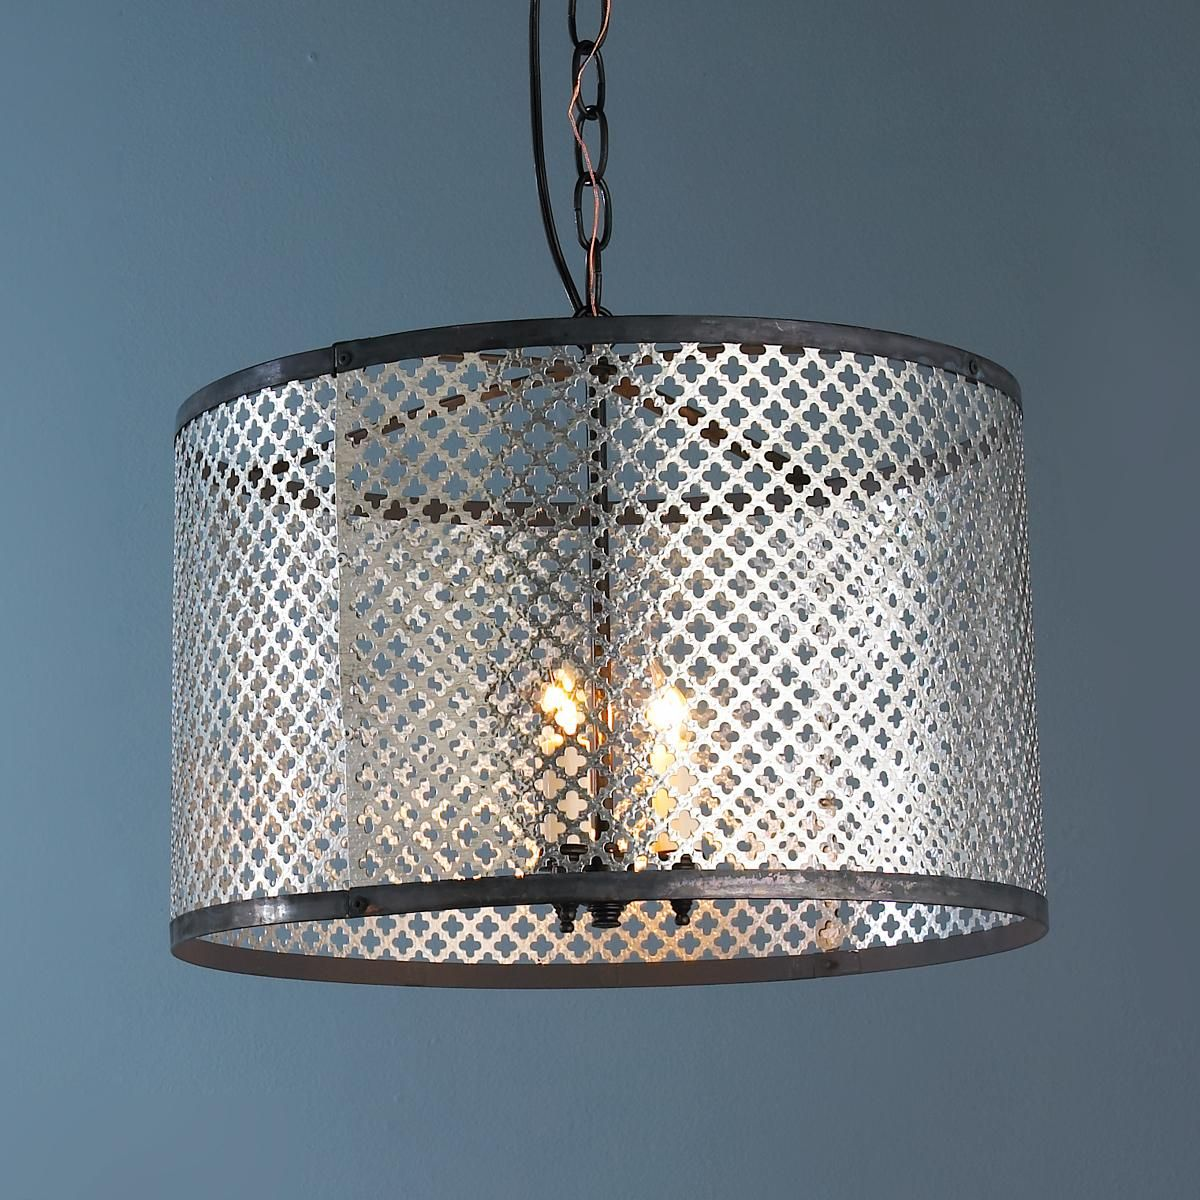 Quatrefoil Radiator Screen Drum Shade Pendant Chandelier: cool ...